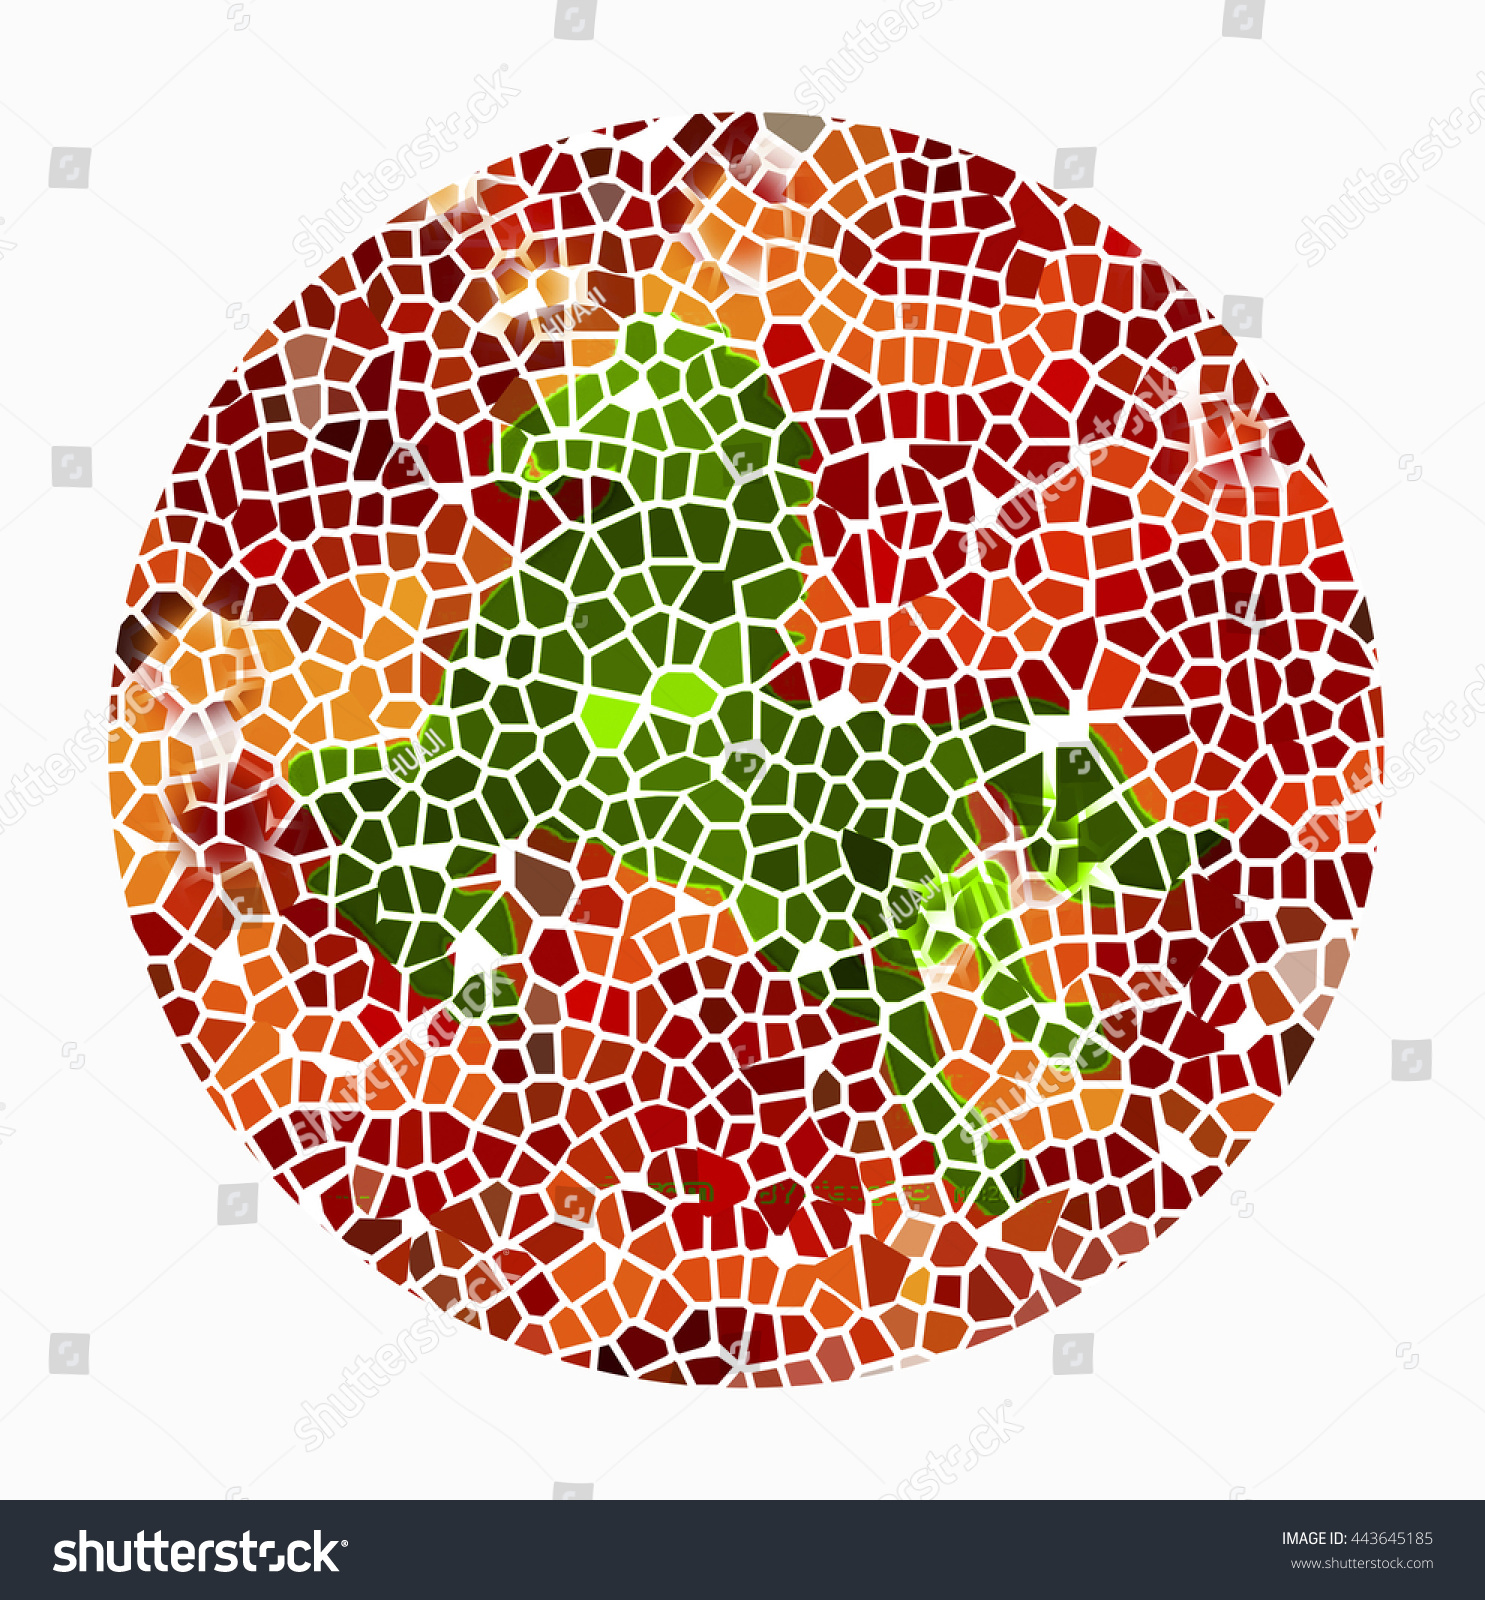 Color Blind Testhorse Stock Illustration 443645185 - Shutterstock